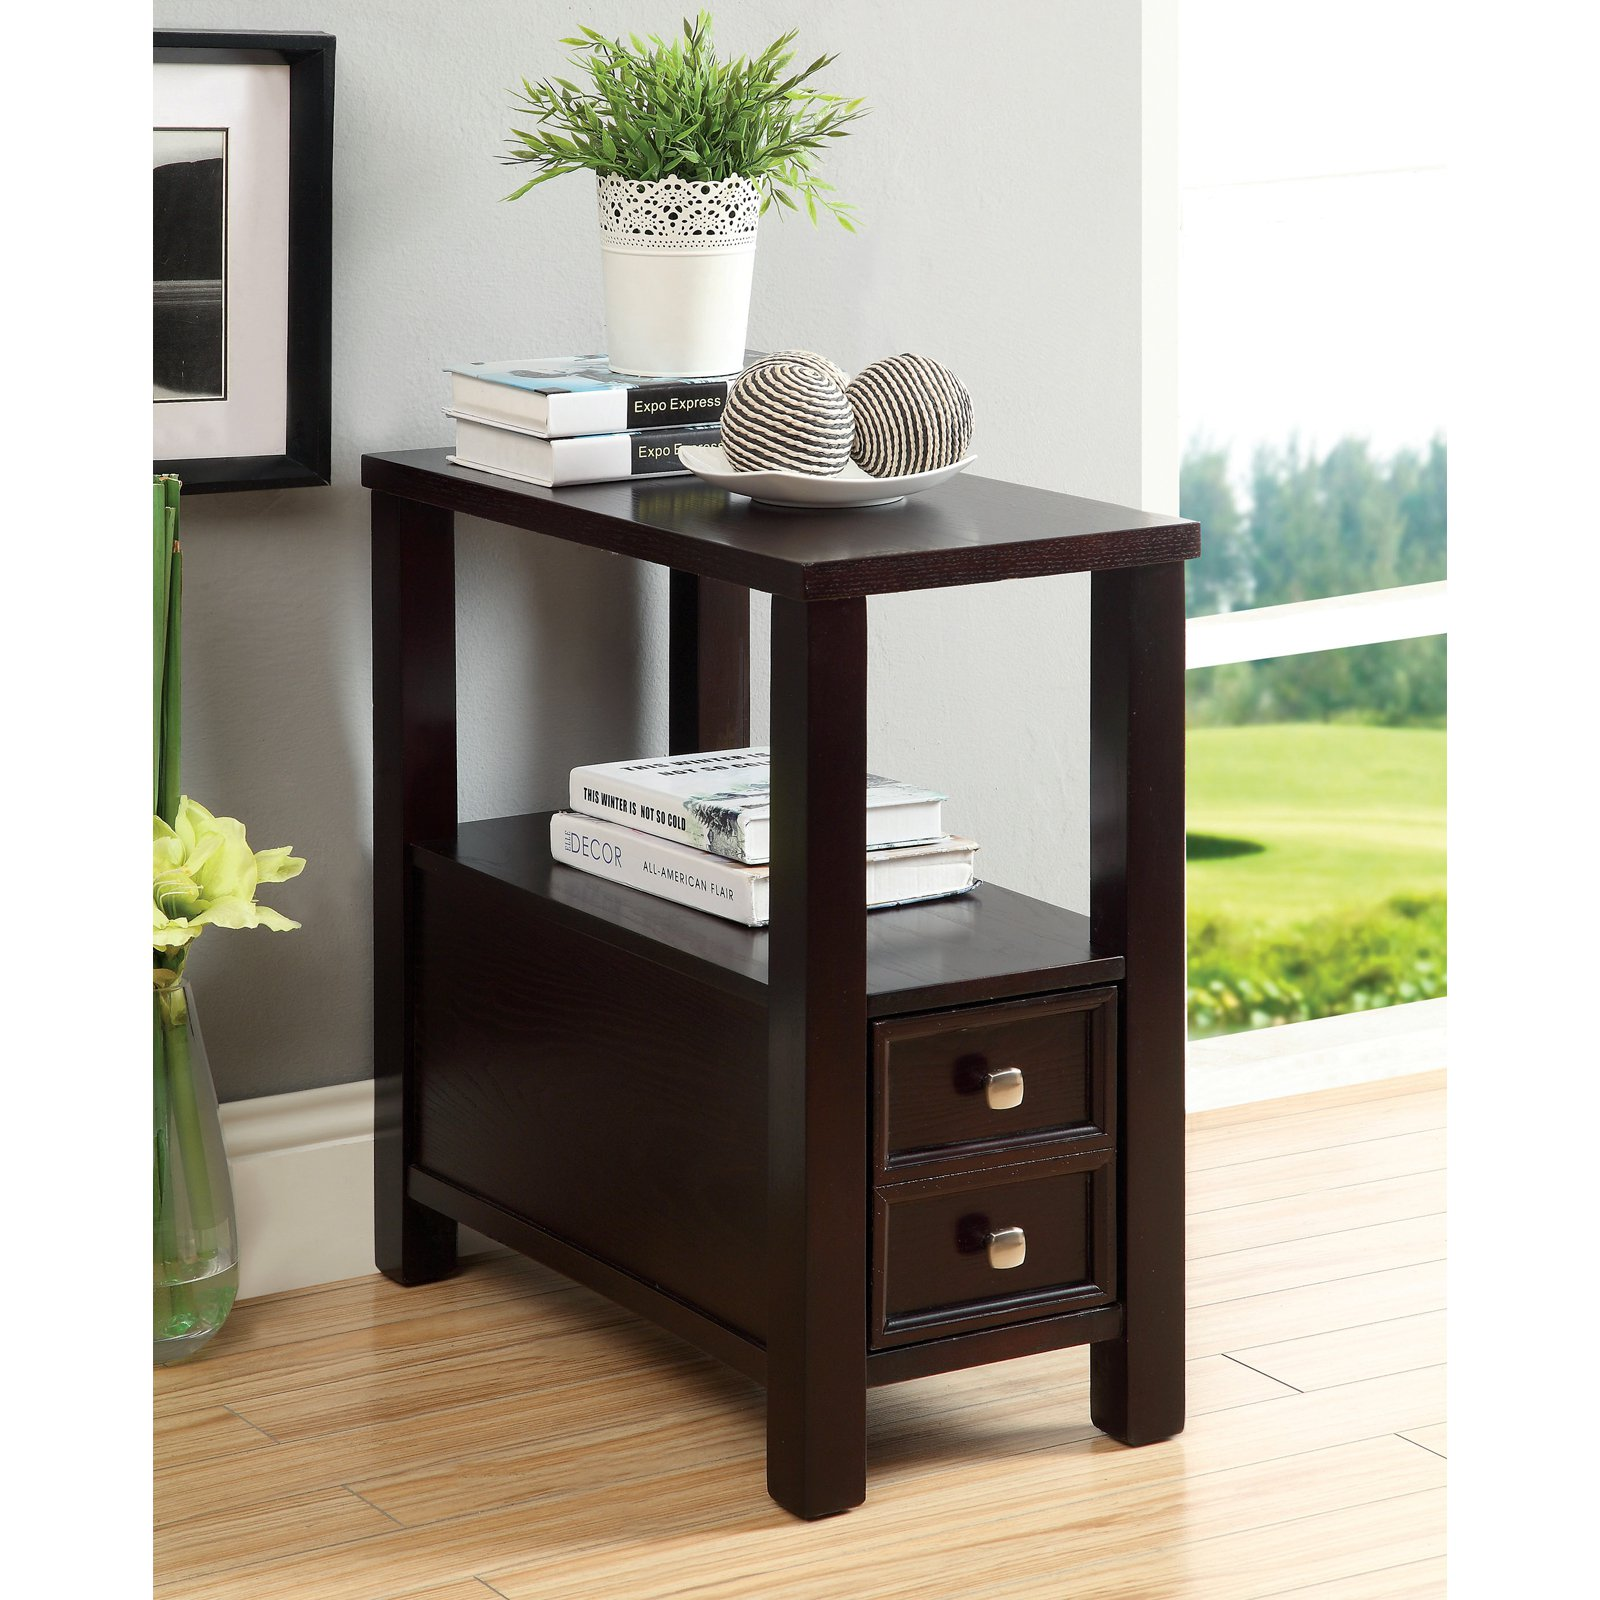 Furniture of America Townsville Double Drawer Side Accent Table - Espresso